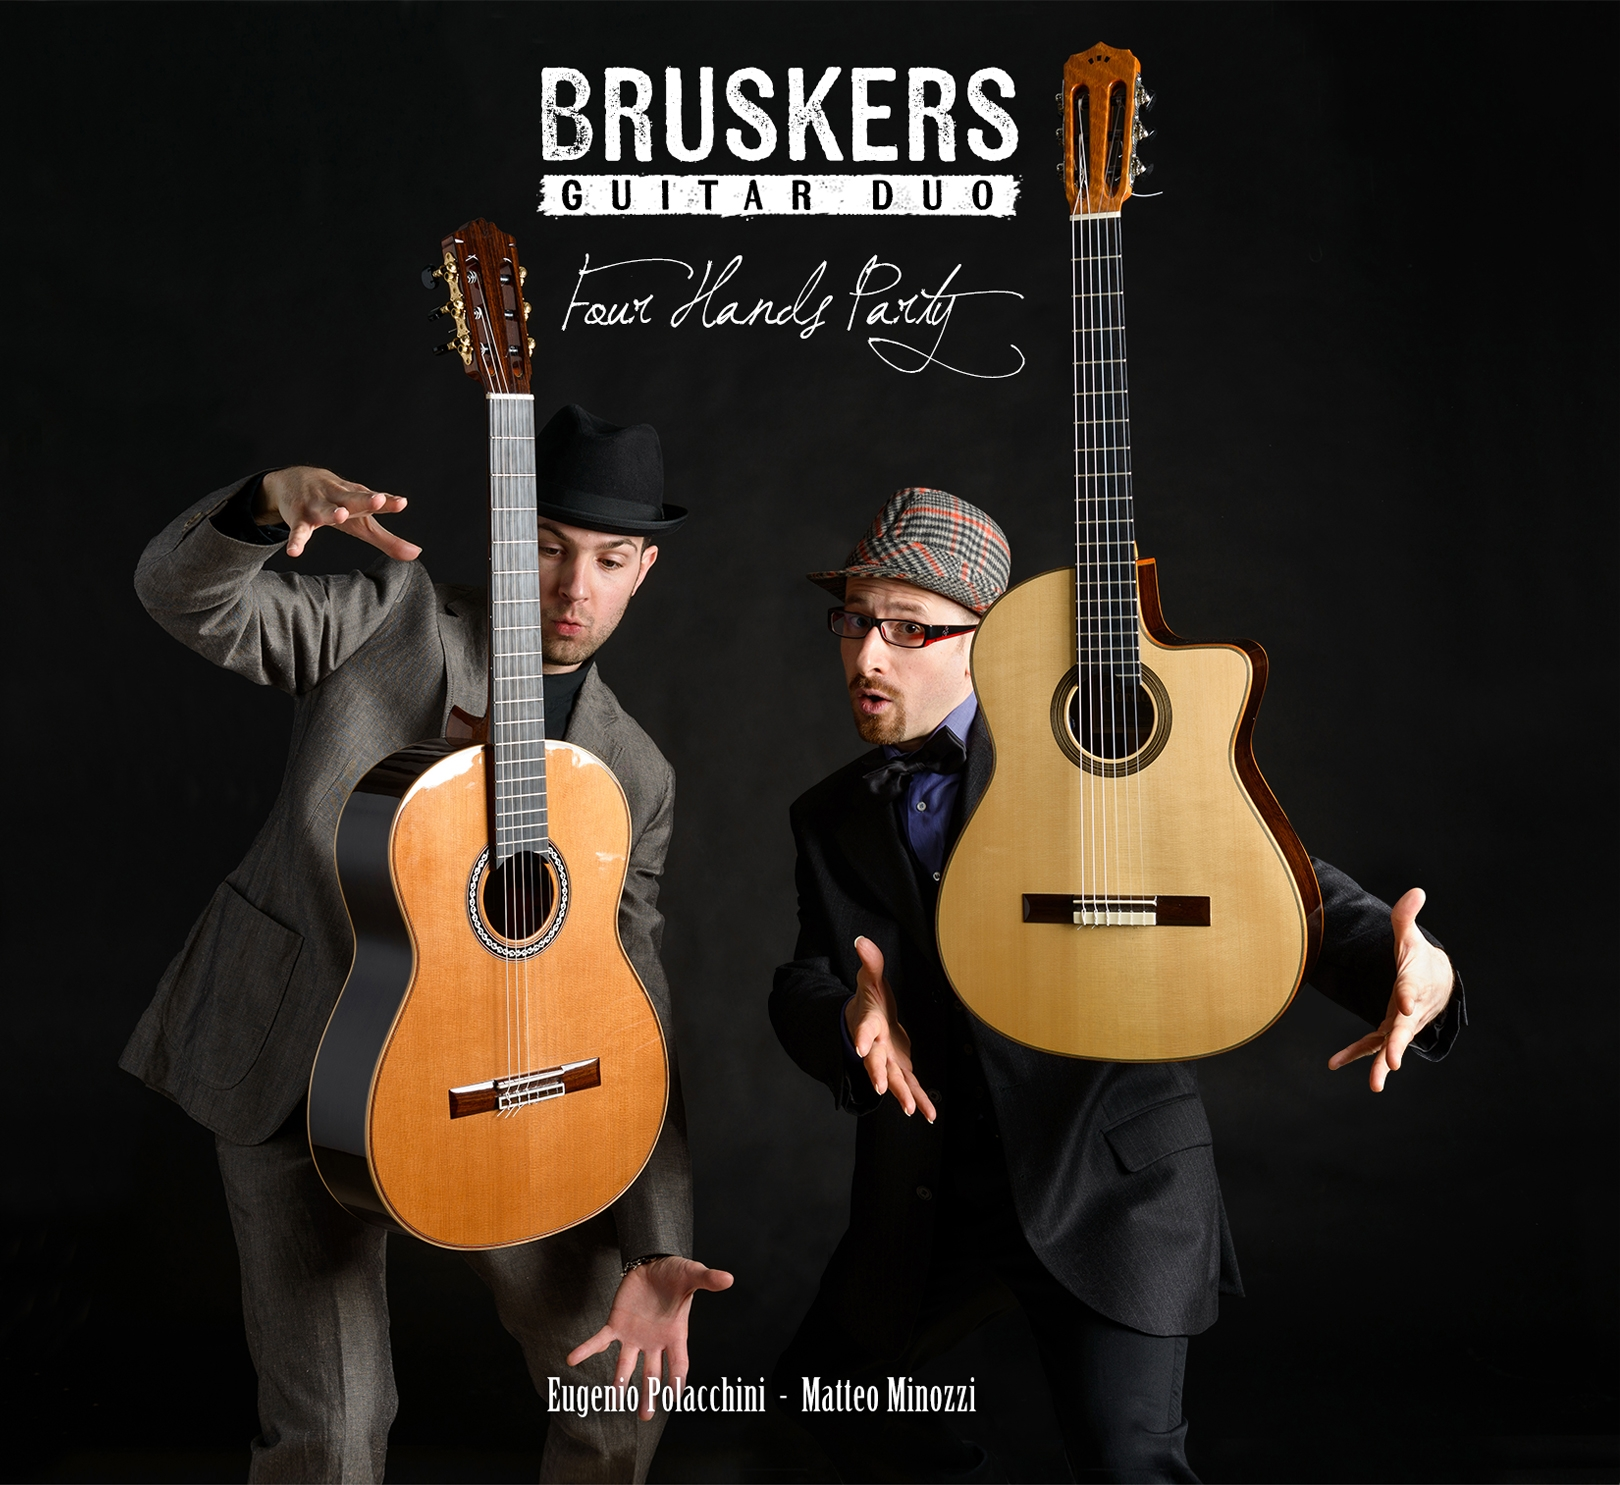 Four Hands Party - CD cover - Bruskers Guitar Duo